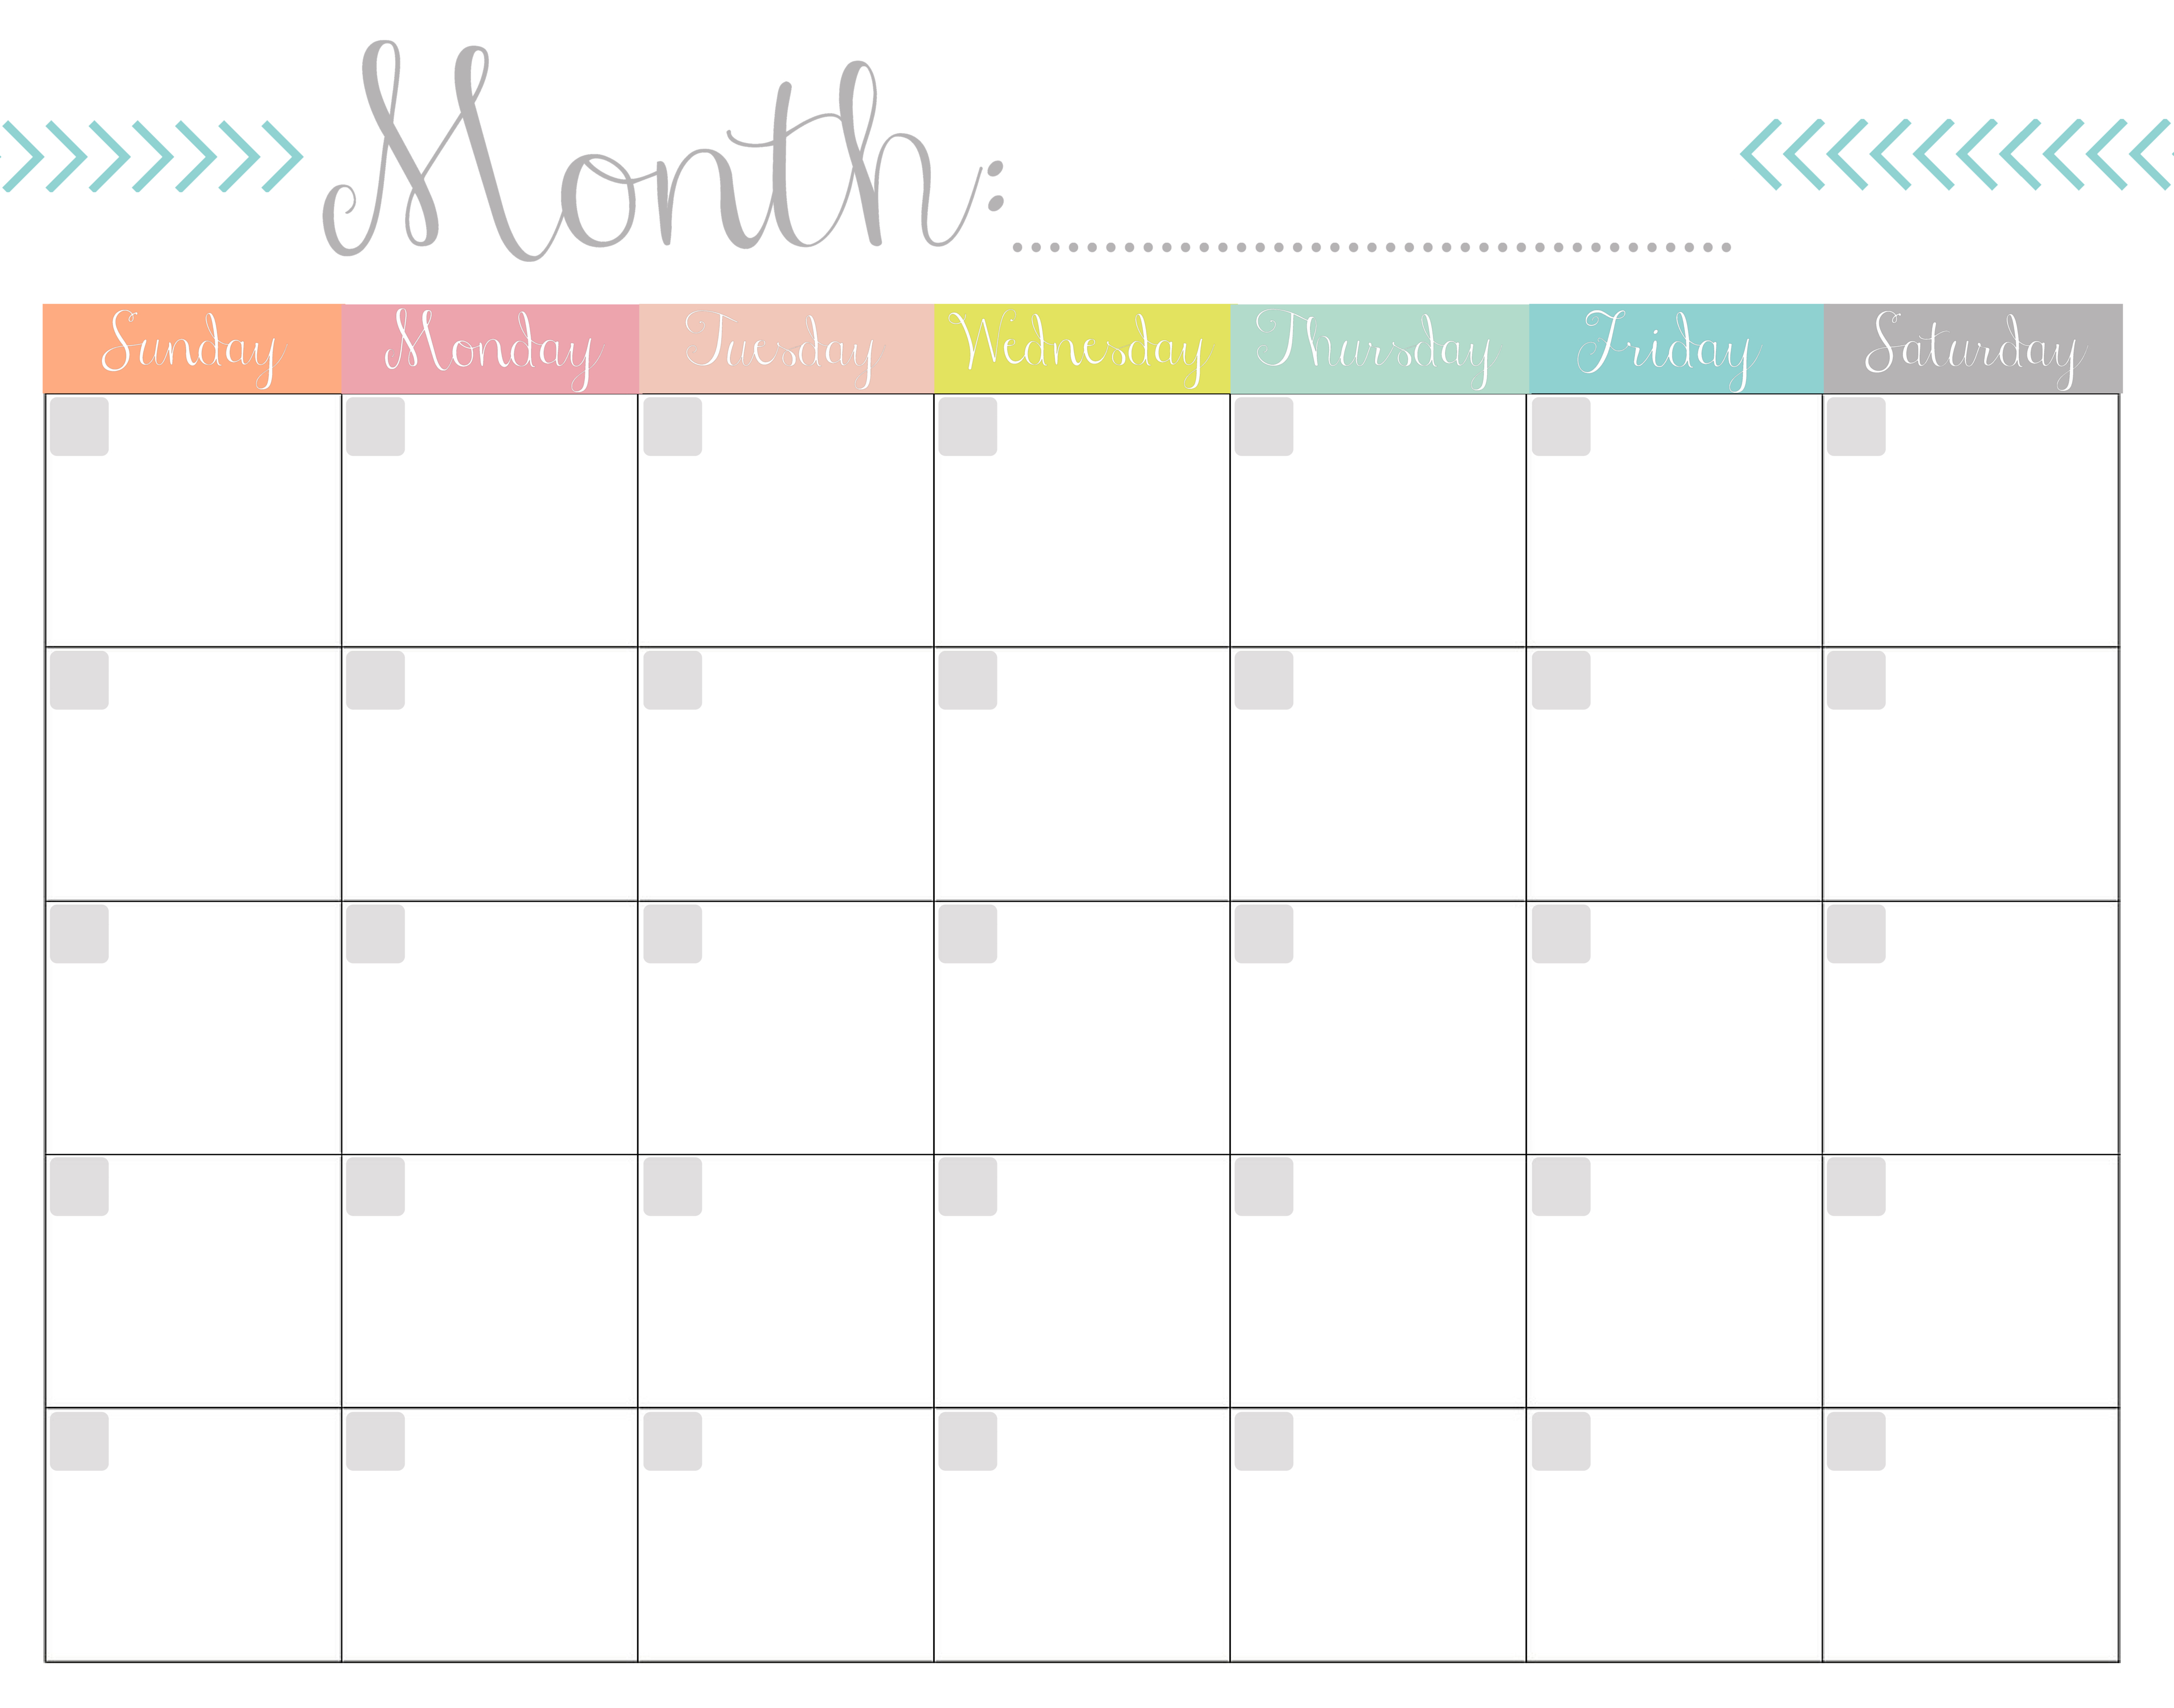 Home Management Binder Completed | Weekly calendar, Calendar